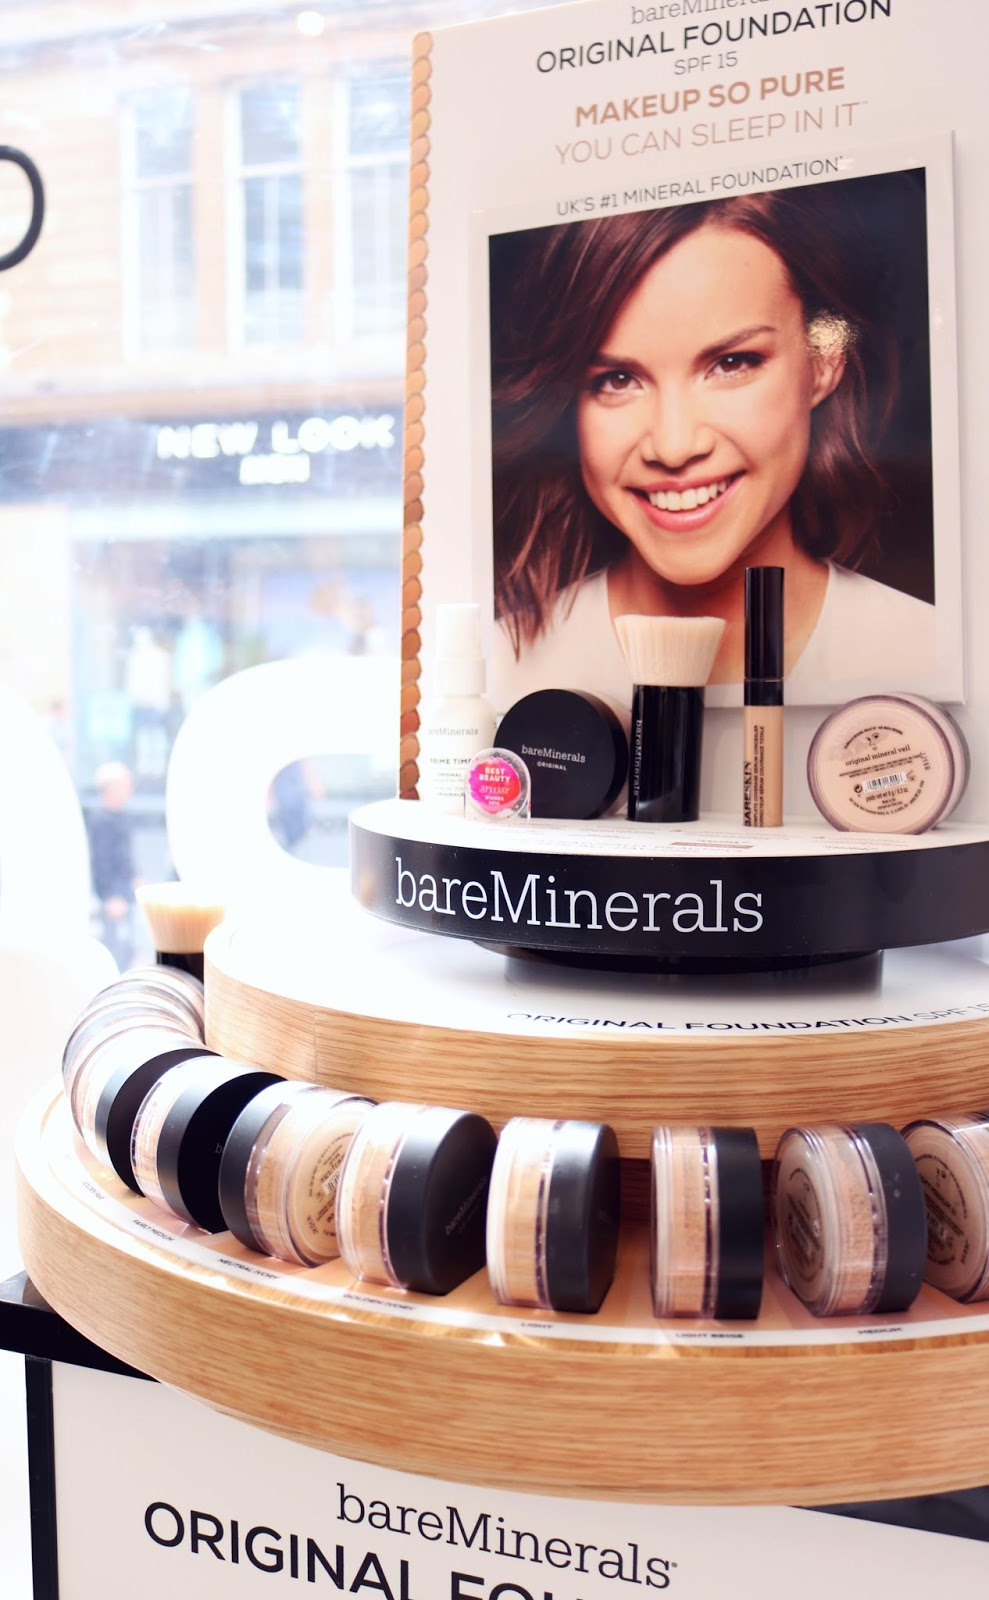 Powder x bareMinerals Event Glasgow Original Foundation SPF 15